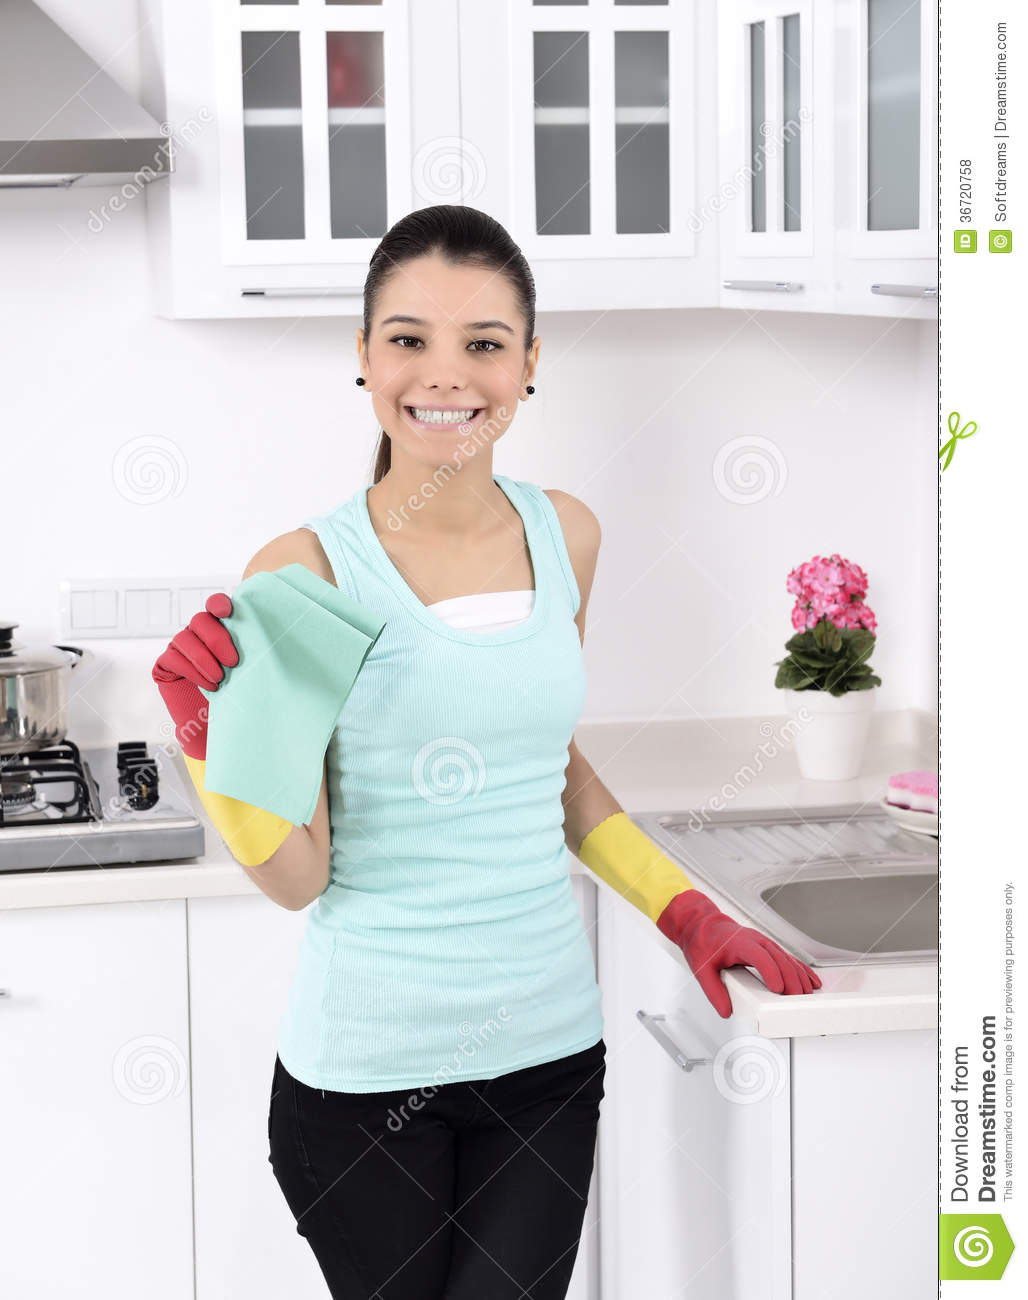 Cleaning the house royalty free stock photos image 36720758 for House cleaning stock photos